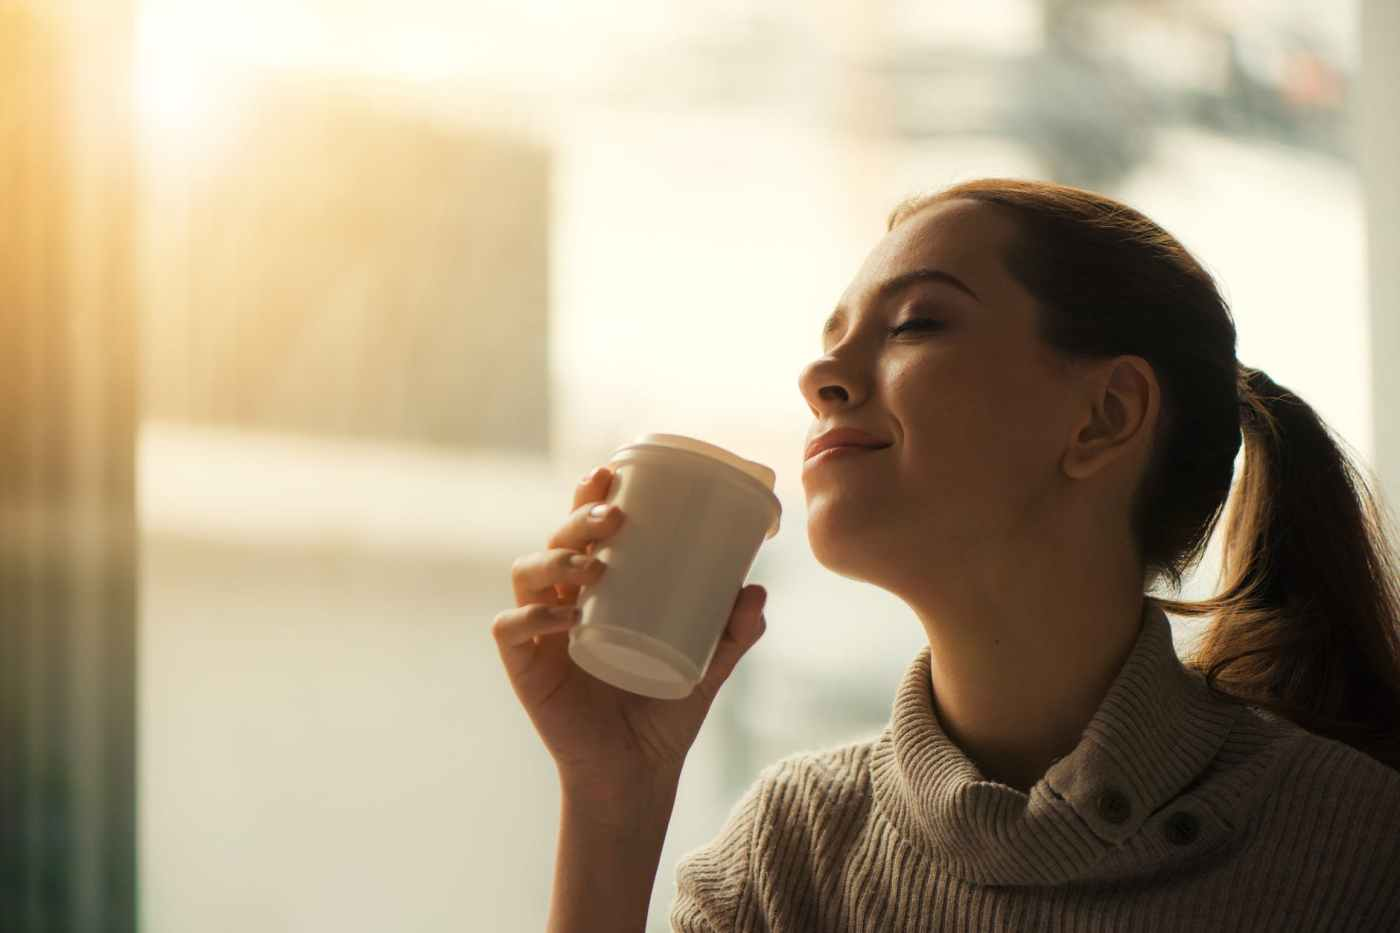 Three Simple Routines You Can Do Each Day to Help Relax Your Body